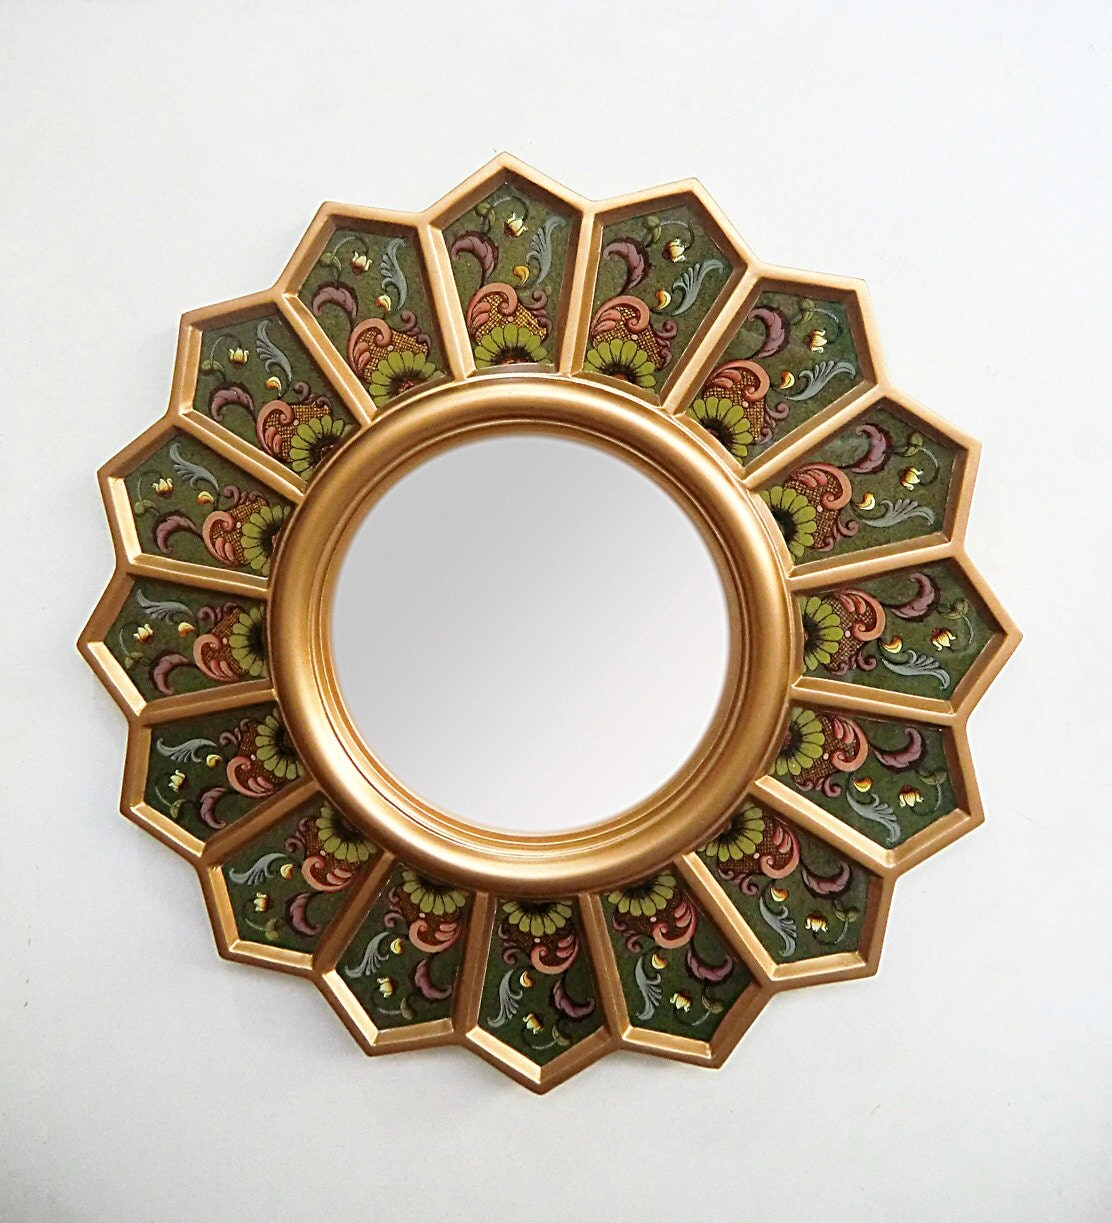 Mirror round 39 green sunflower 39 decorative wall by Round decorative wall mirrors